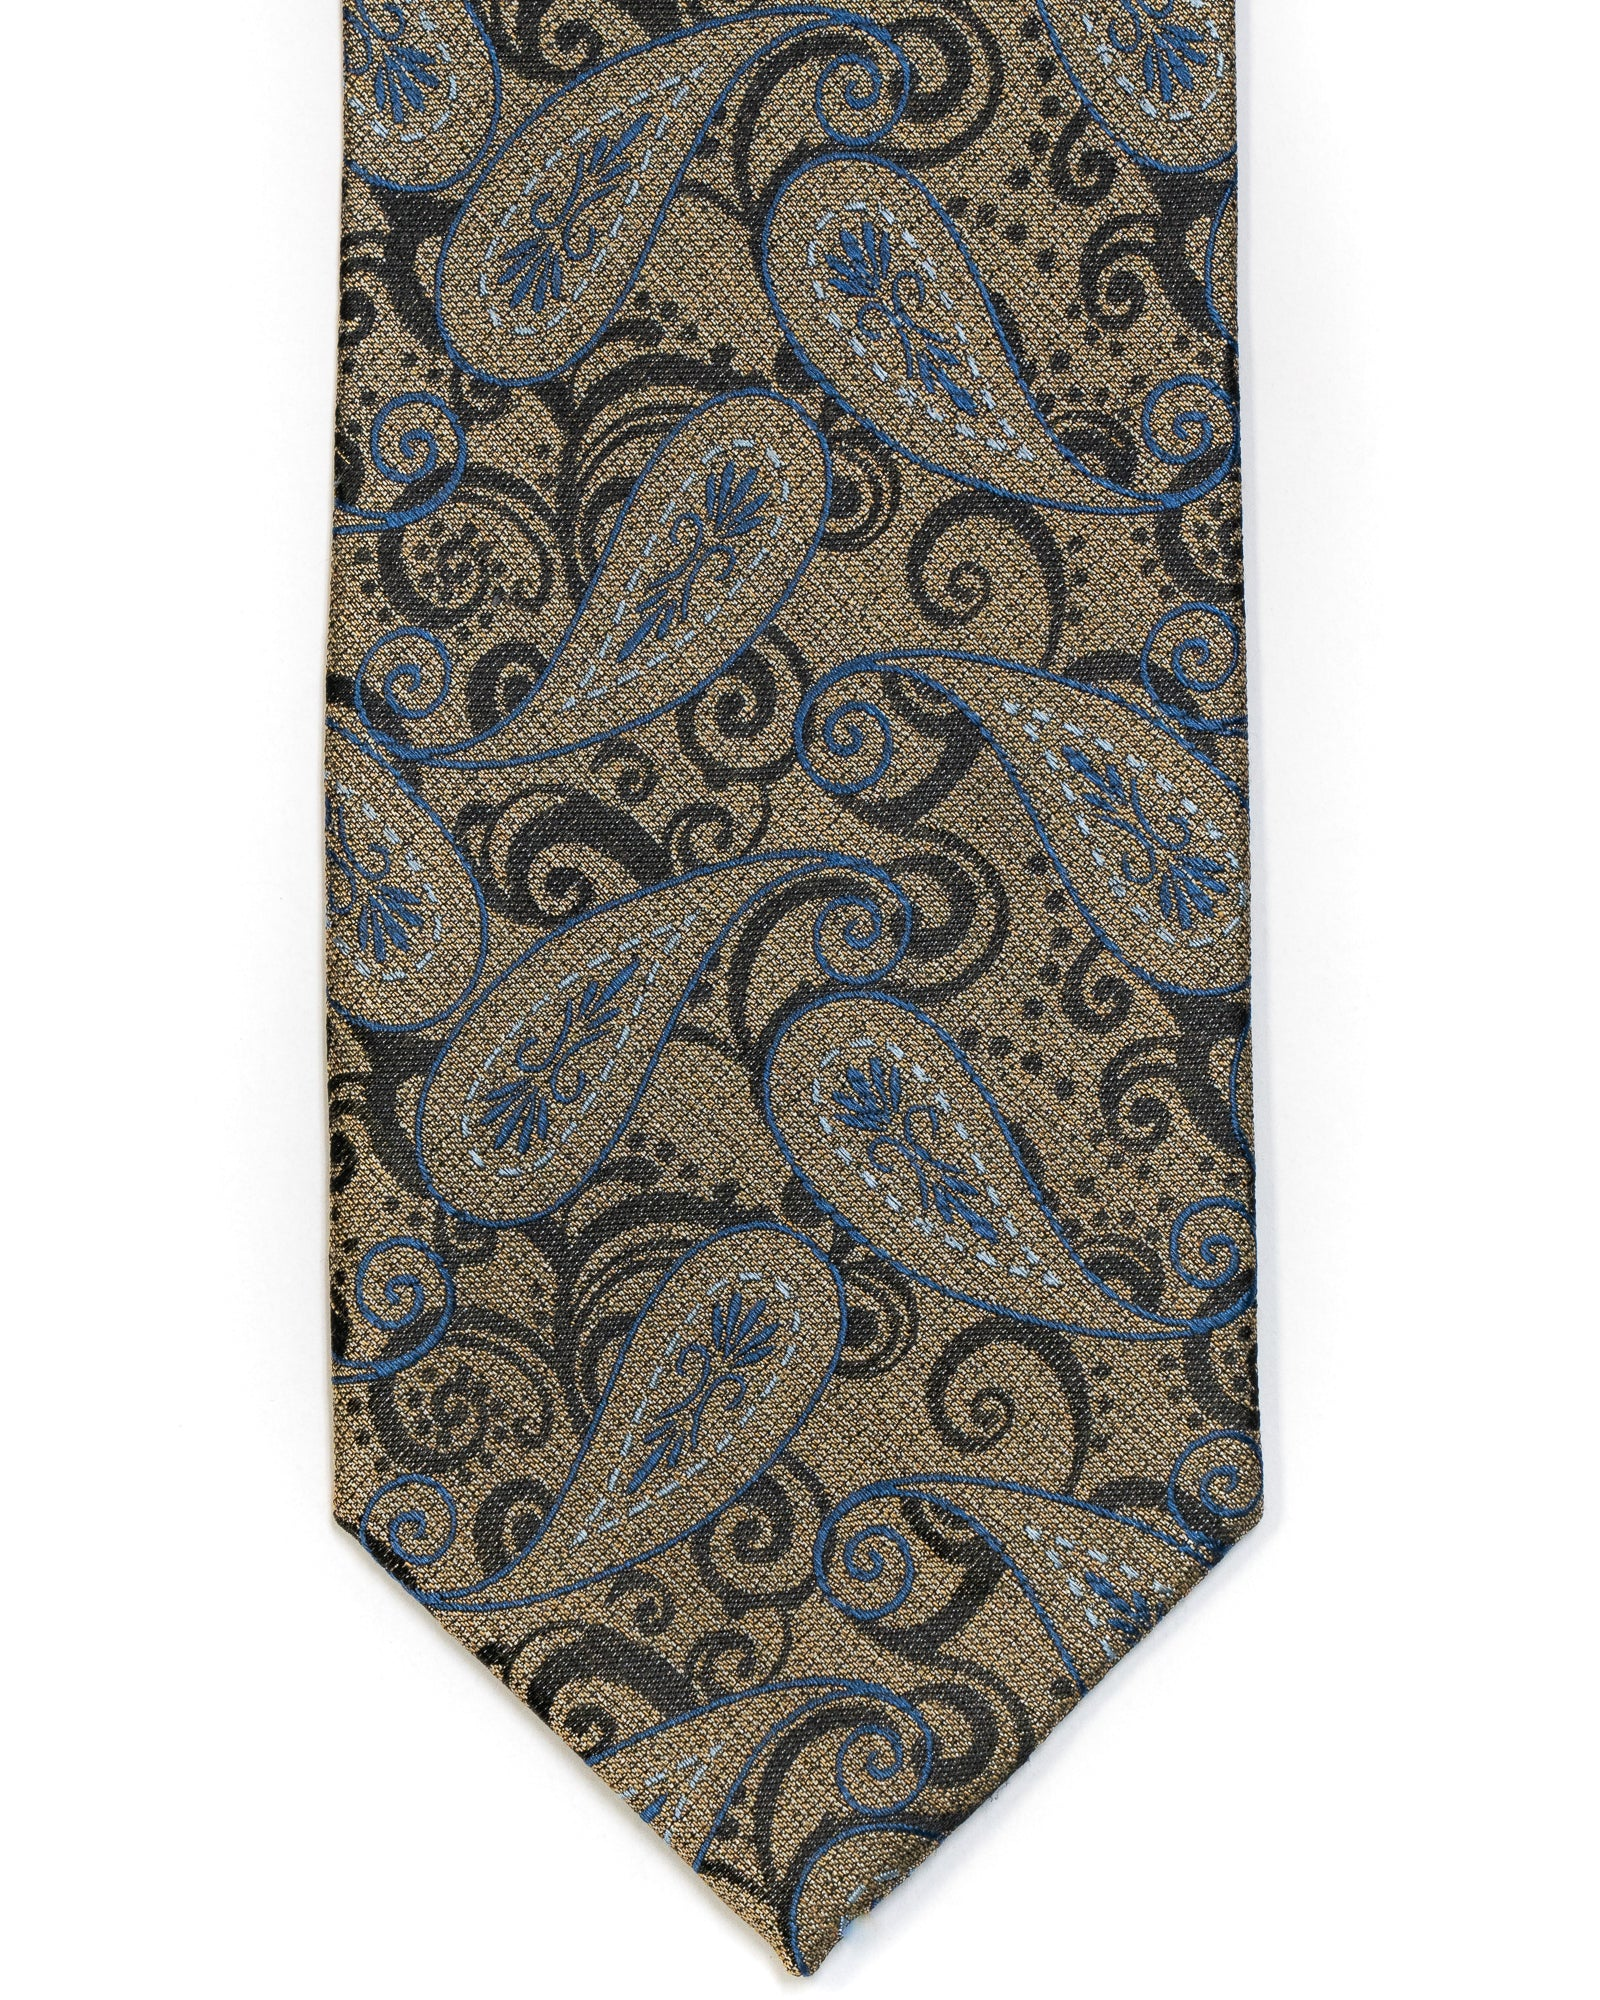 Silk Tie In Gold With Black Paisley Design - Rainwater's Men's Clothing and Tuxedo Rental